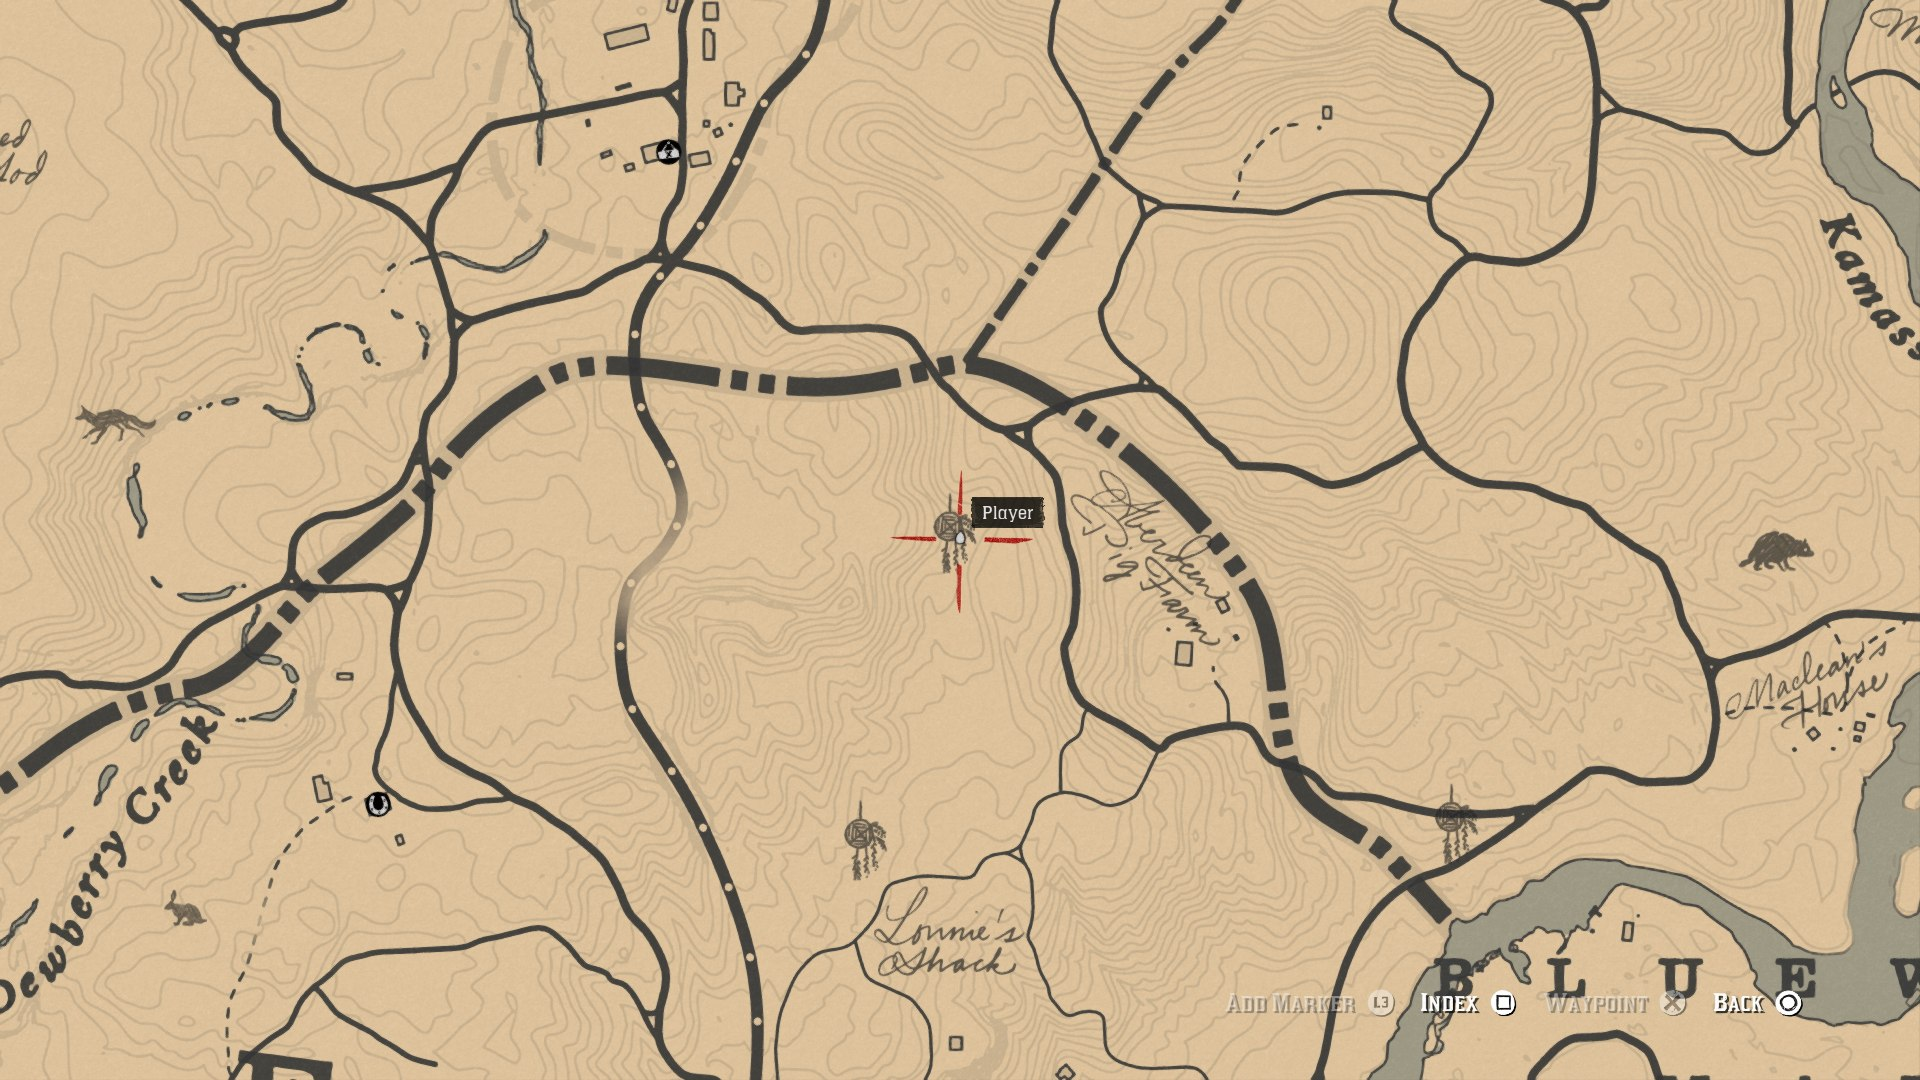 Red Dead Redemption 2 Dreamcatcher Locations - How to Find All the